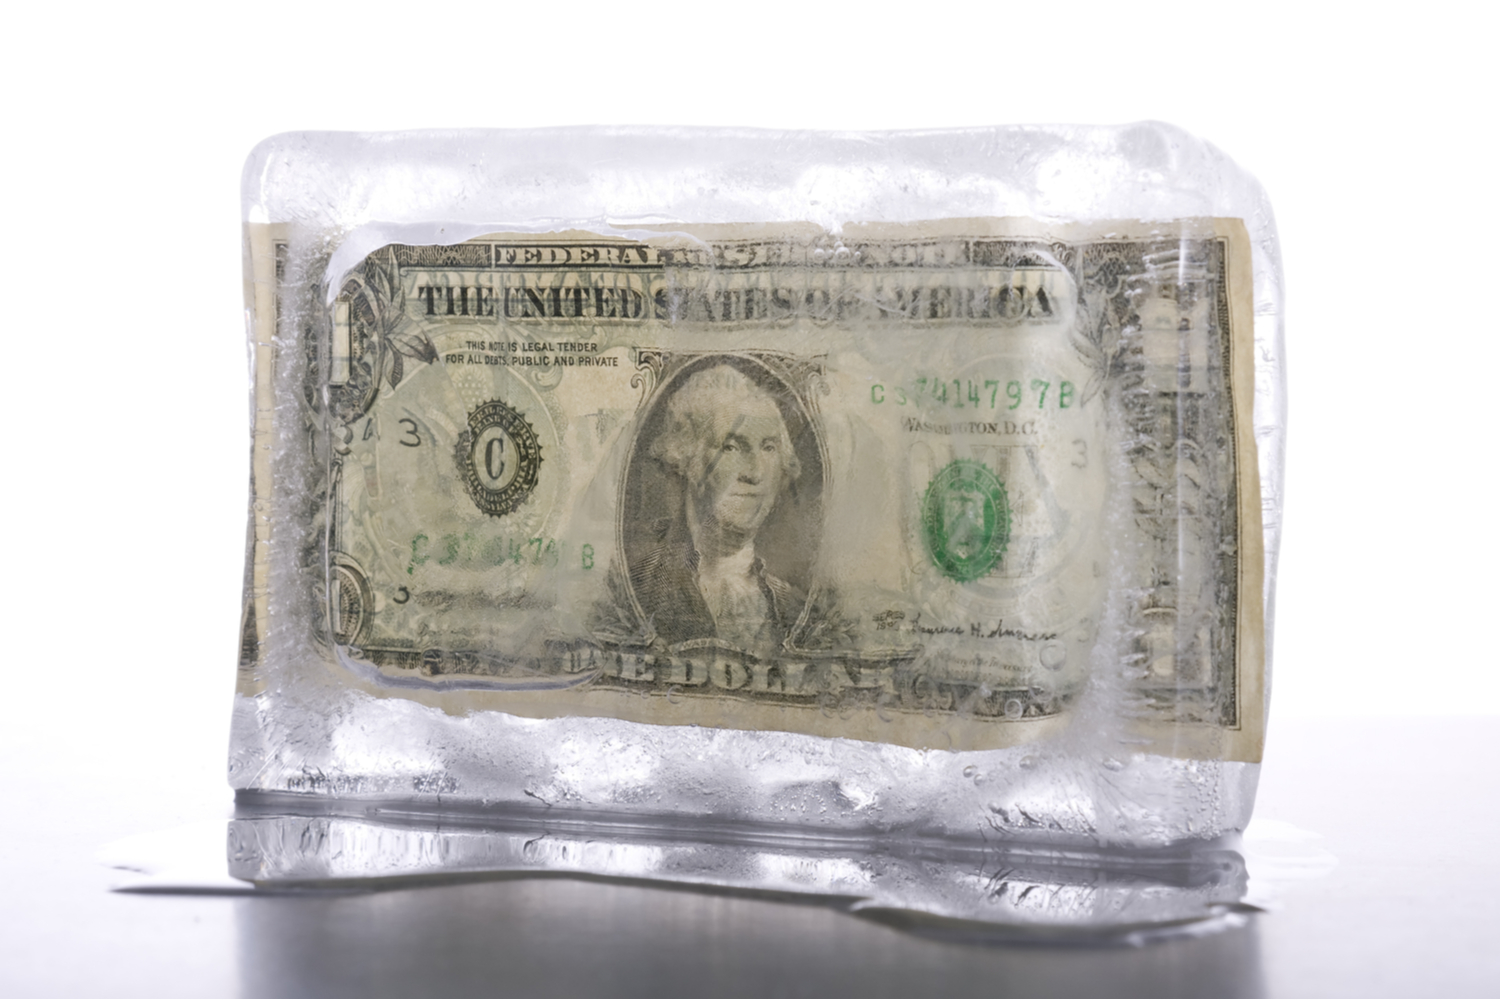 US Court Freezes Assets Linked to Alleged $9M ICO Scam